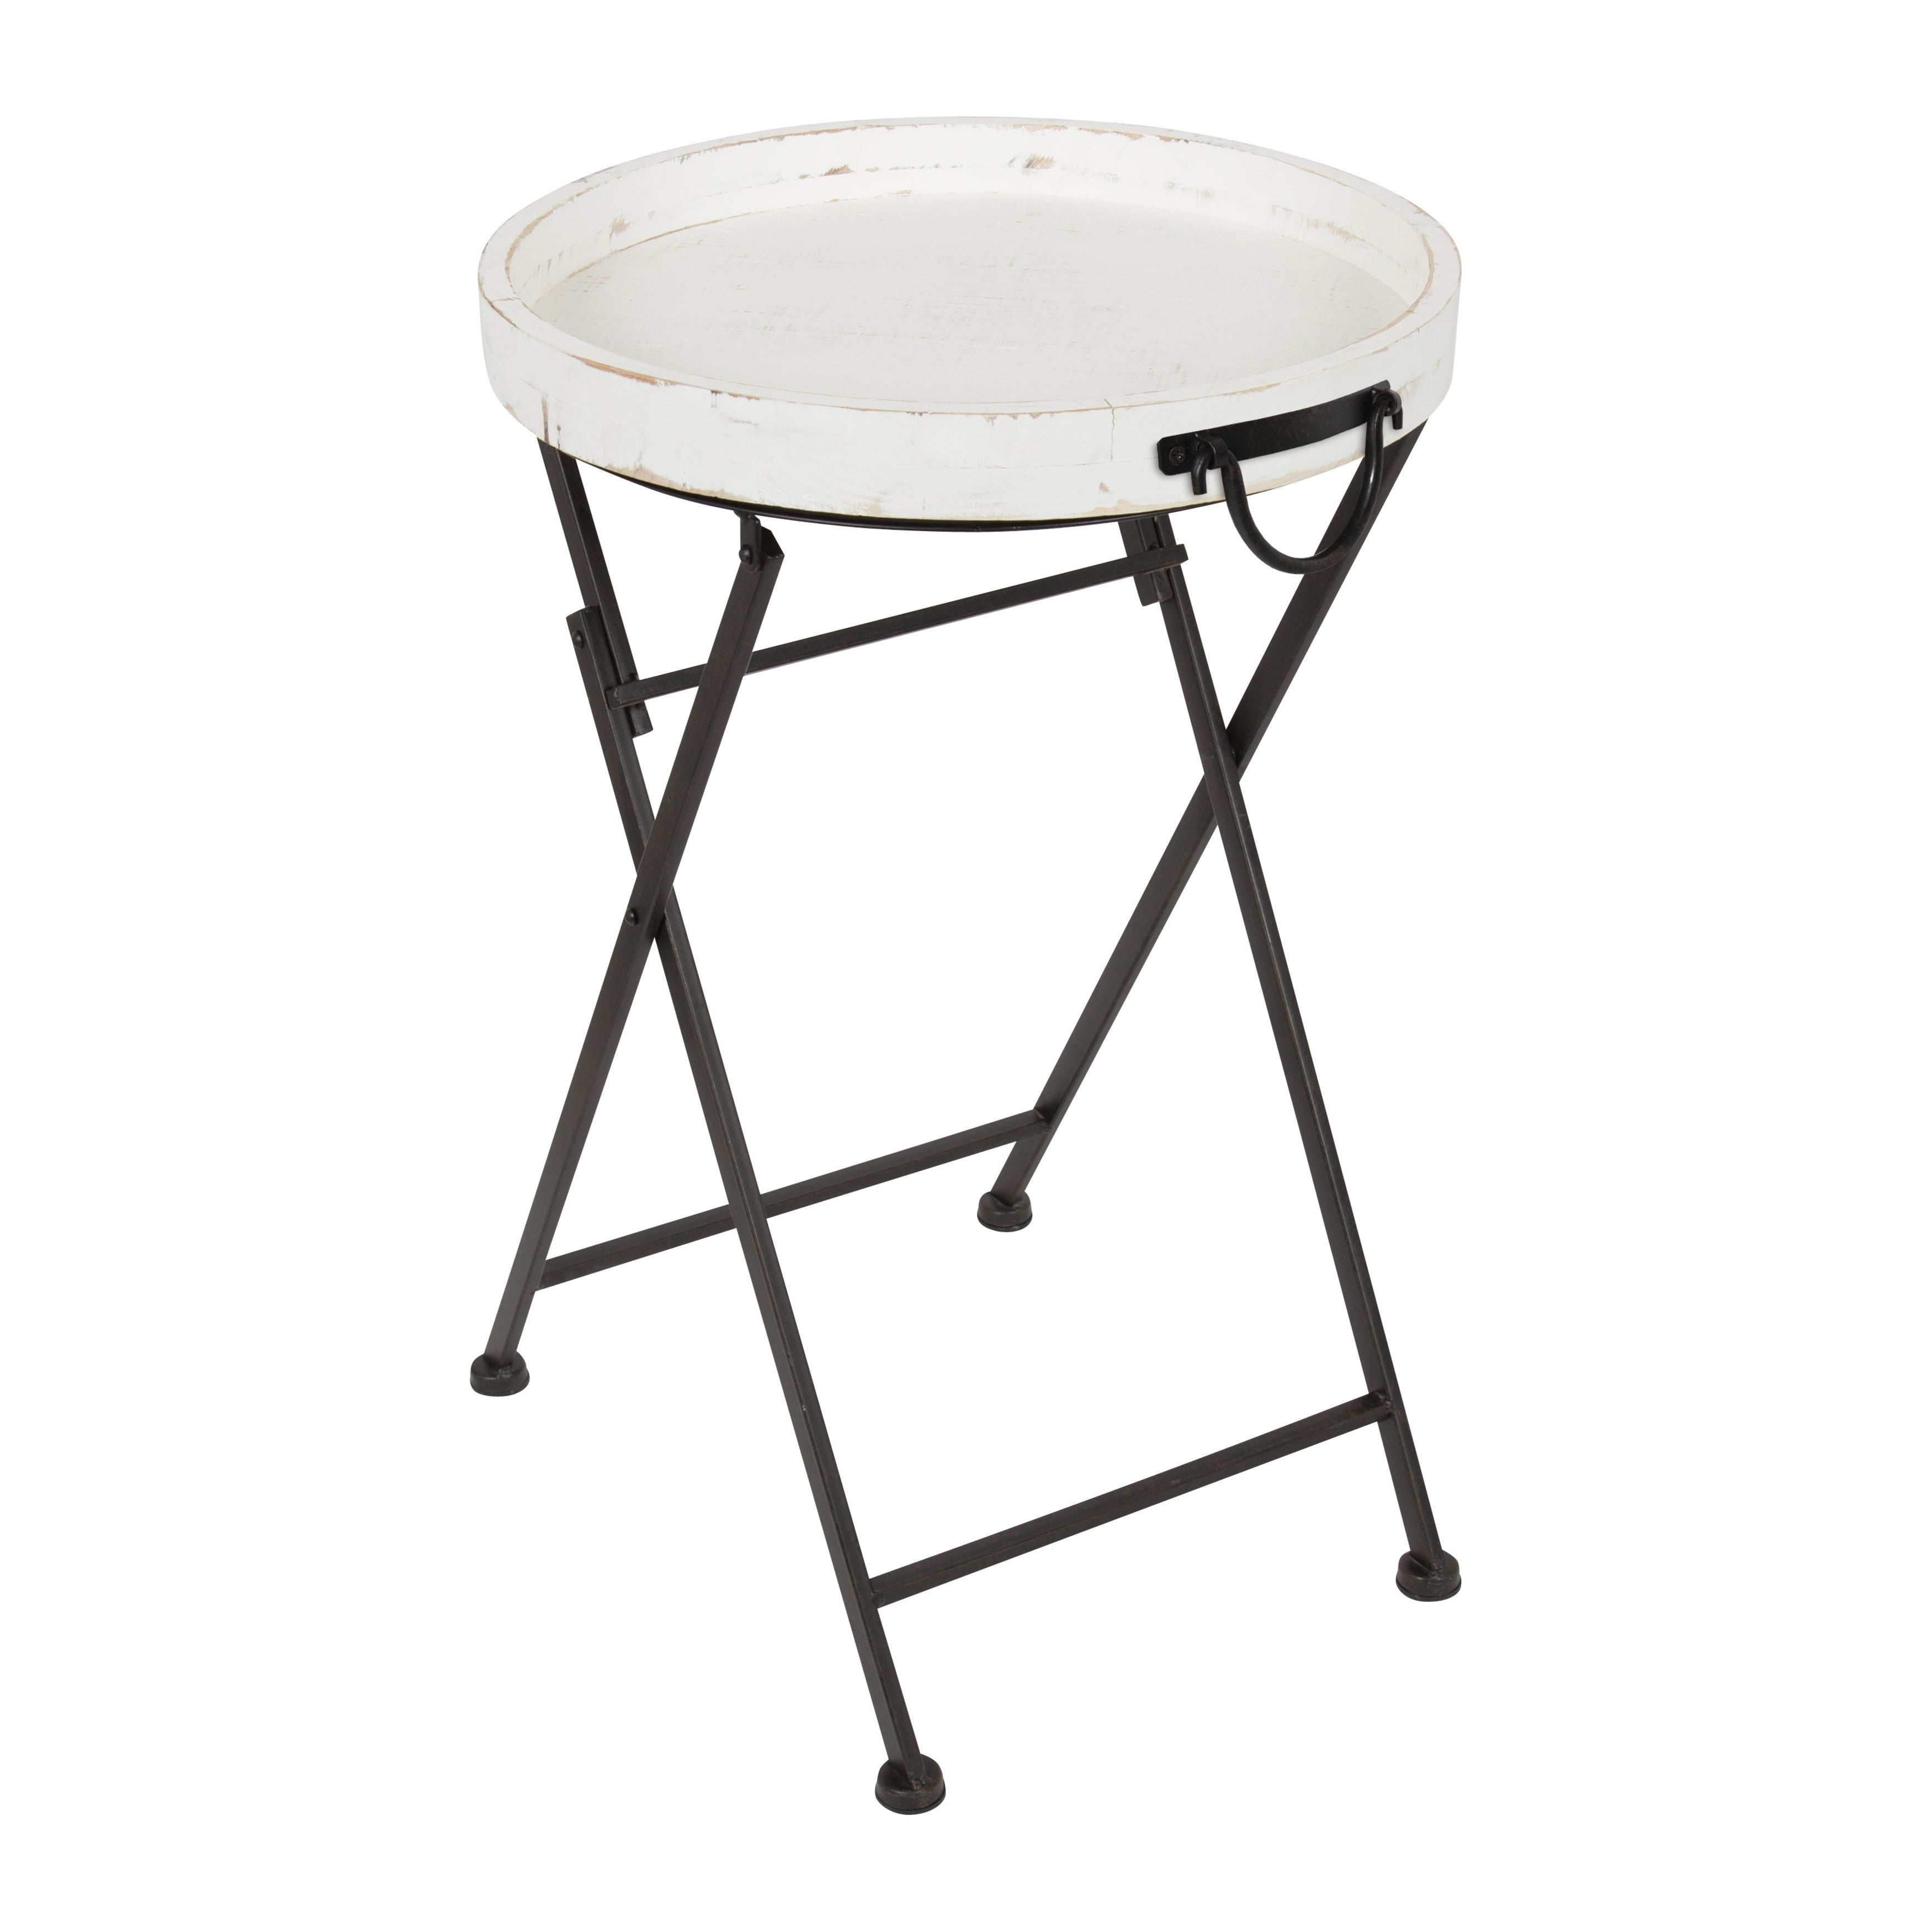 Shop Metal Foldable Black Metal And Rustic Wood Round Tray Table   On Sale    Free Shipping Today   Overstock.com   12073889